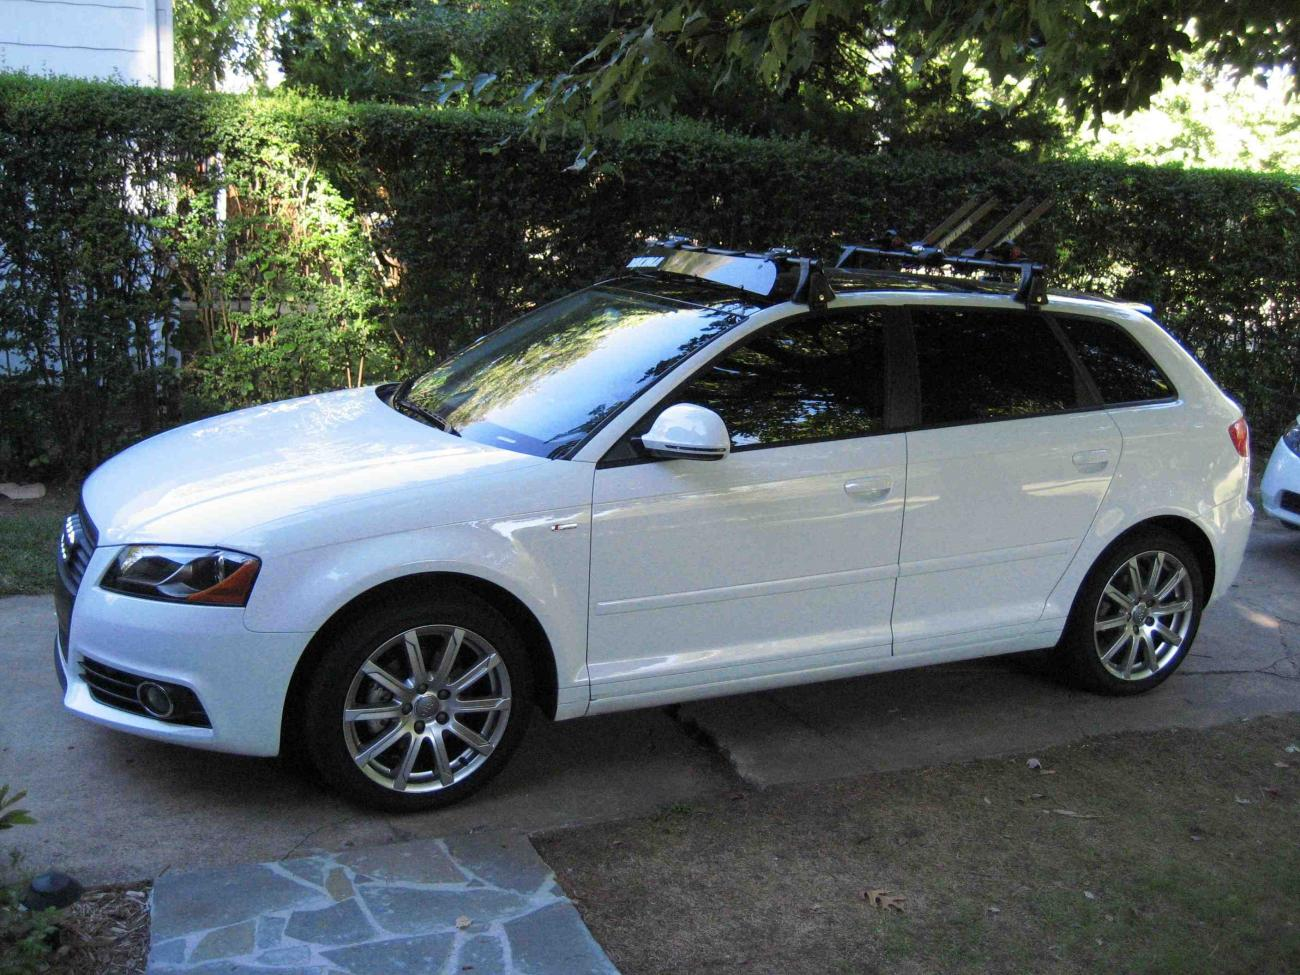 Yakima roof rack for sale - VW GTI Forum / VW Rabbit Forum / VW R32 Forum / VW Golf Forum ...